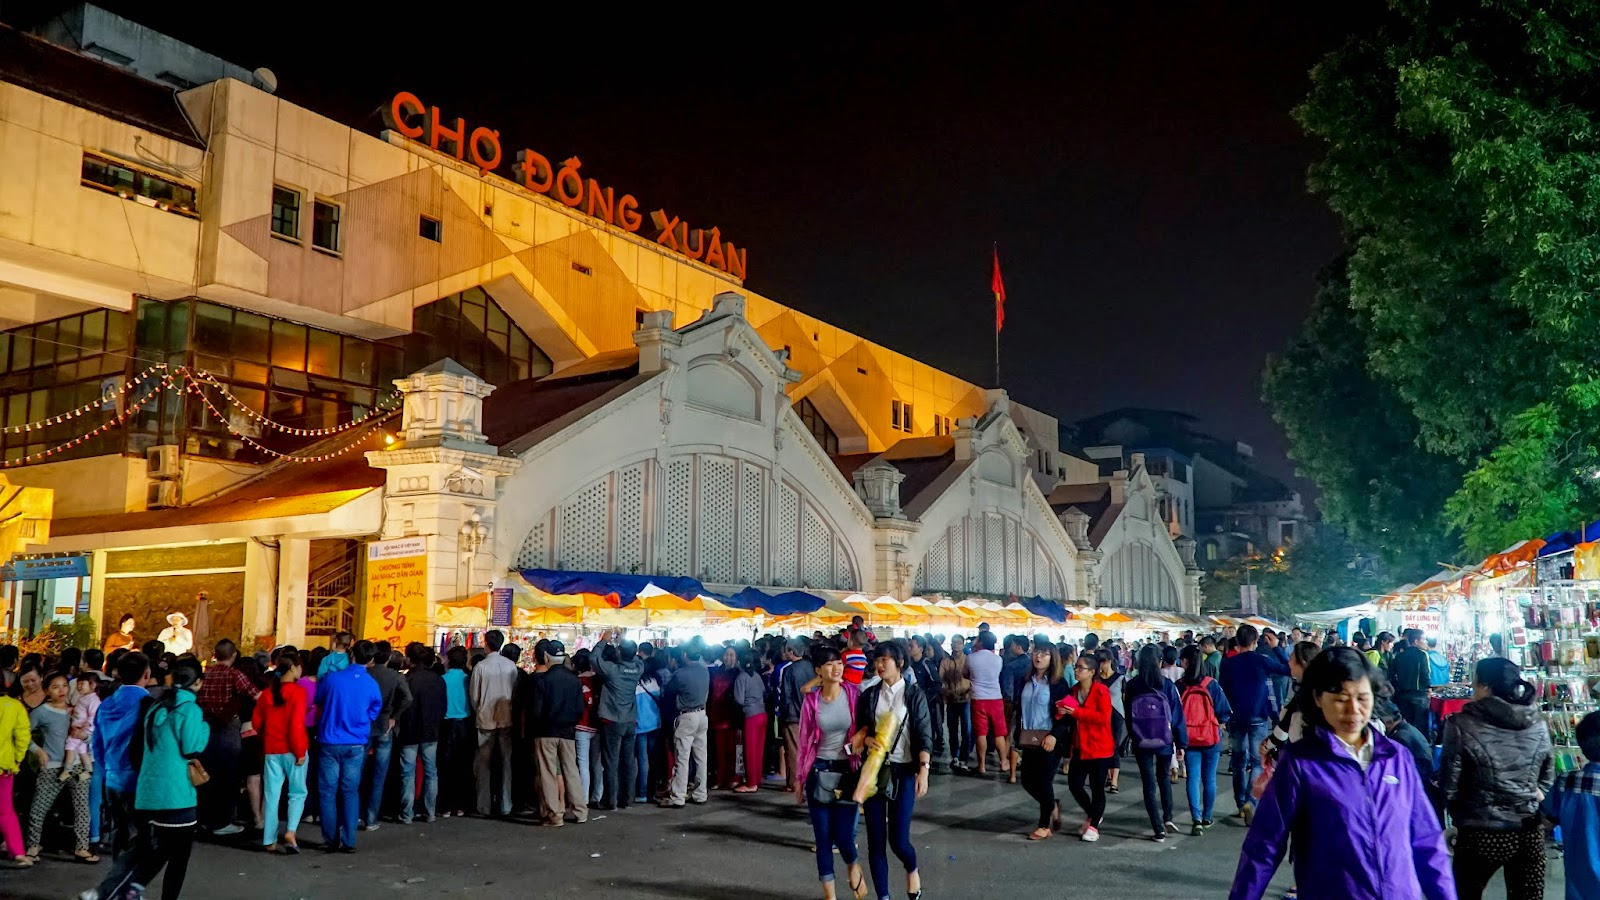 The weekend night market is huge and will probably take you hours to see everything